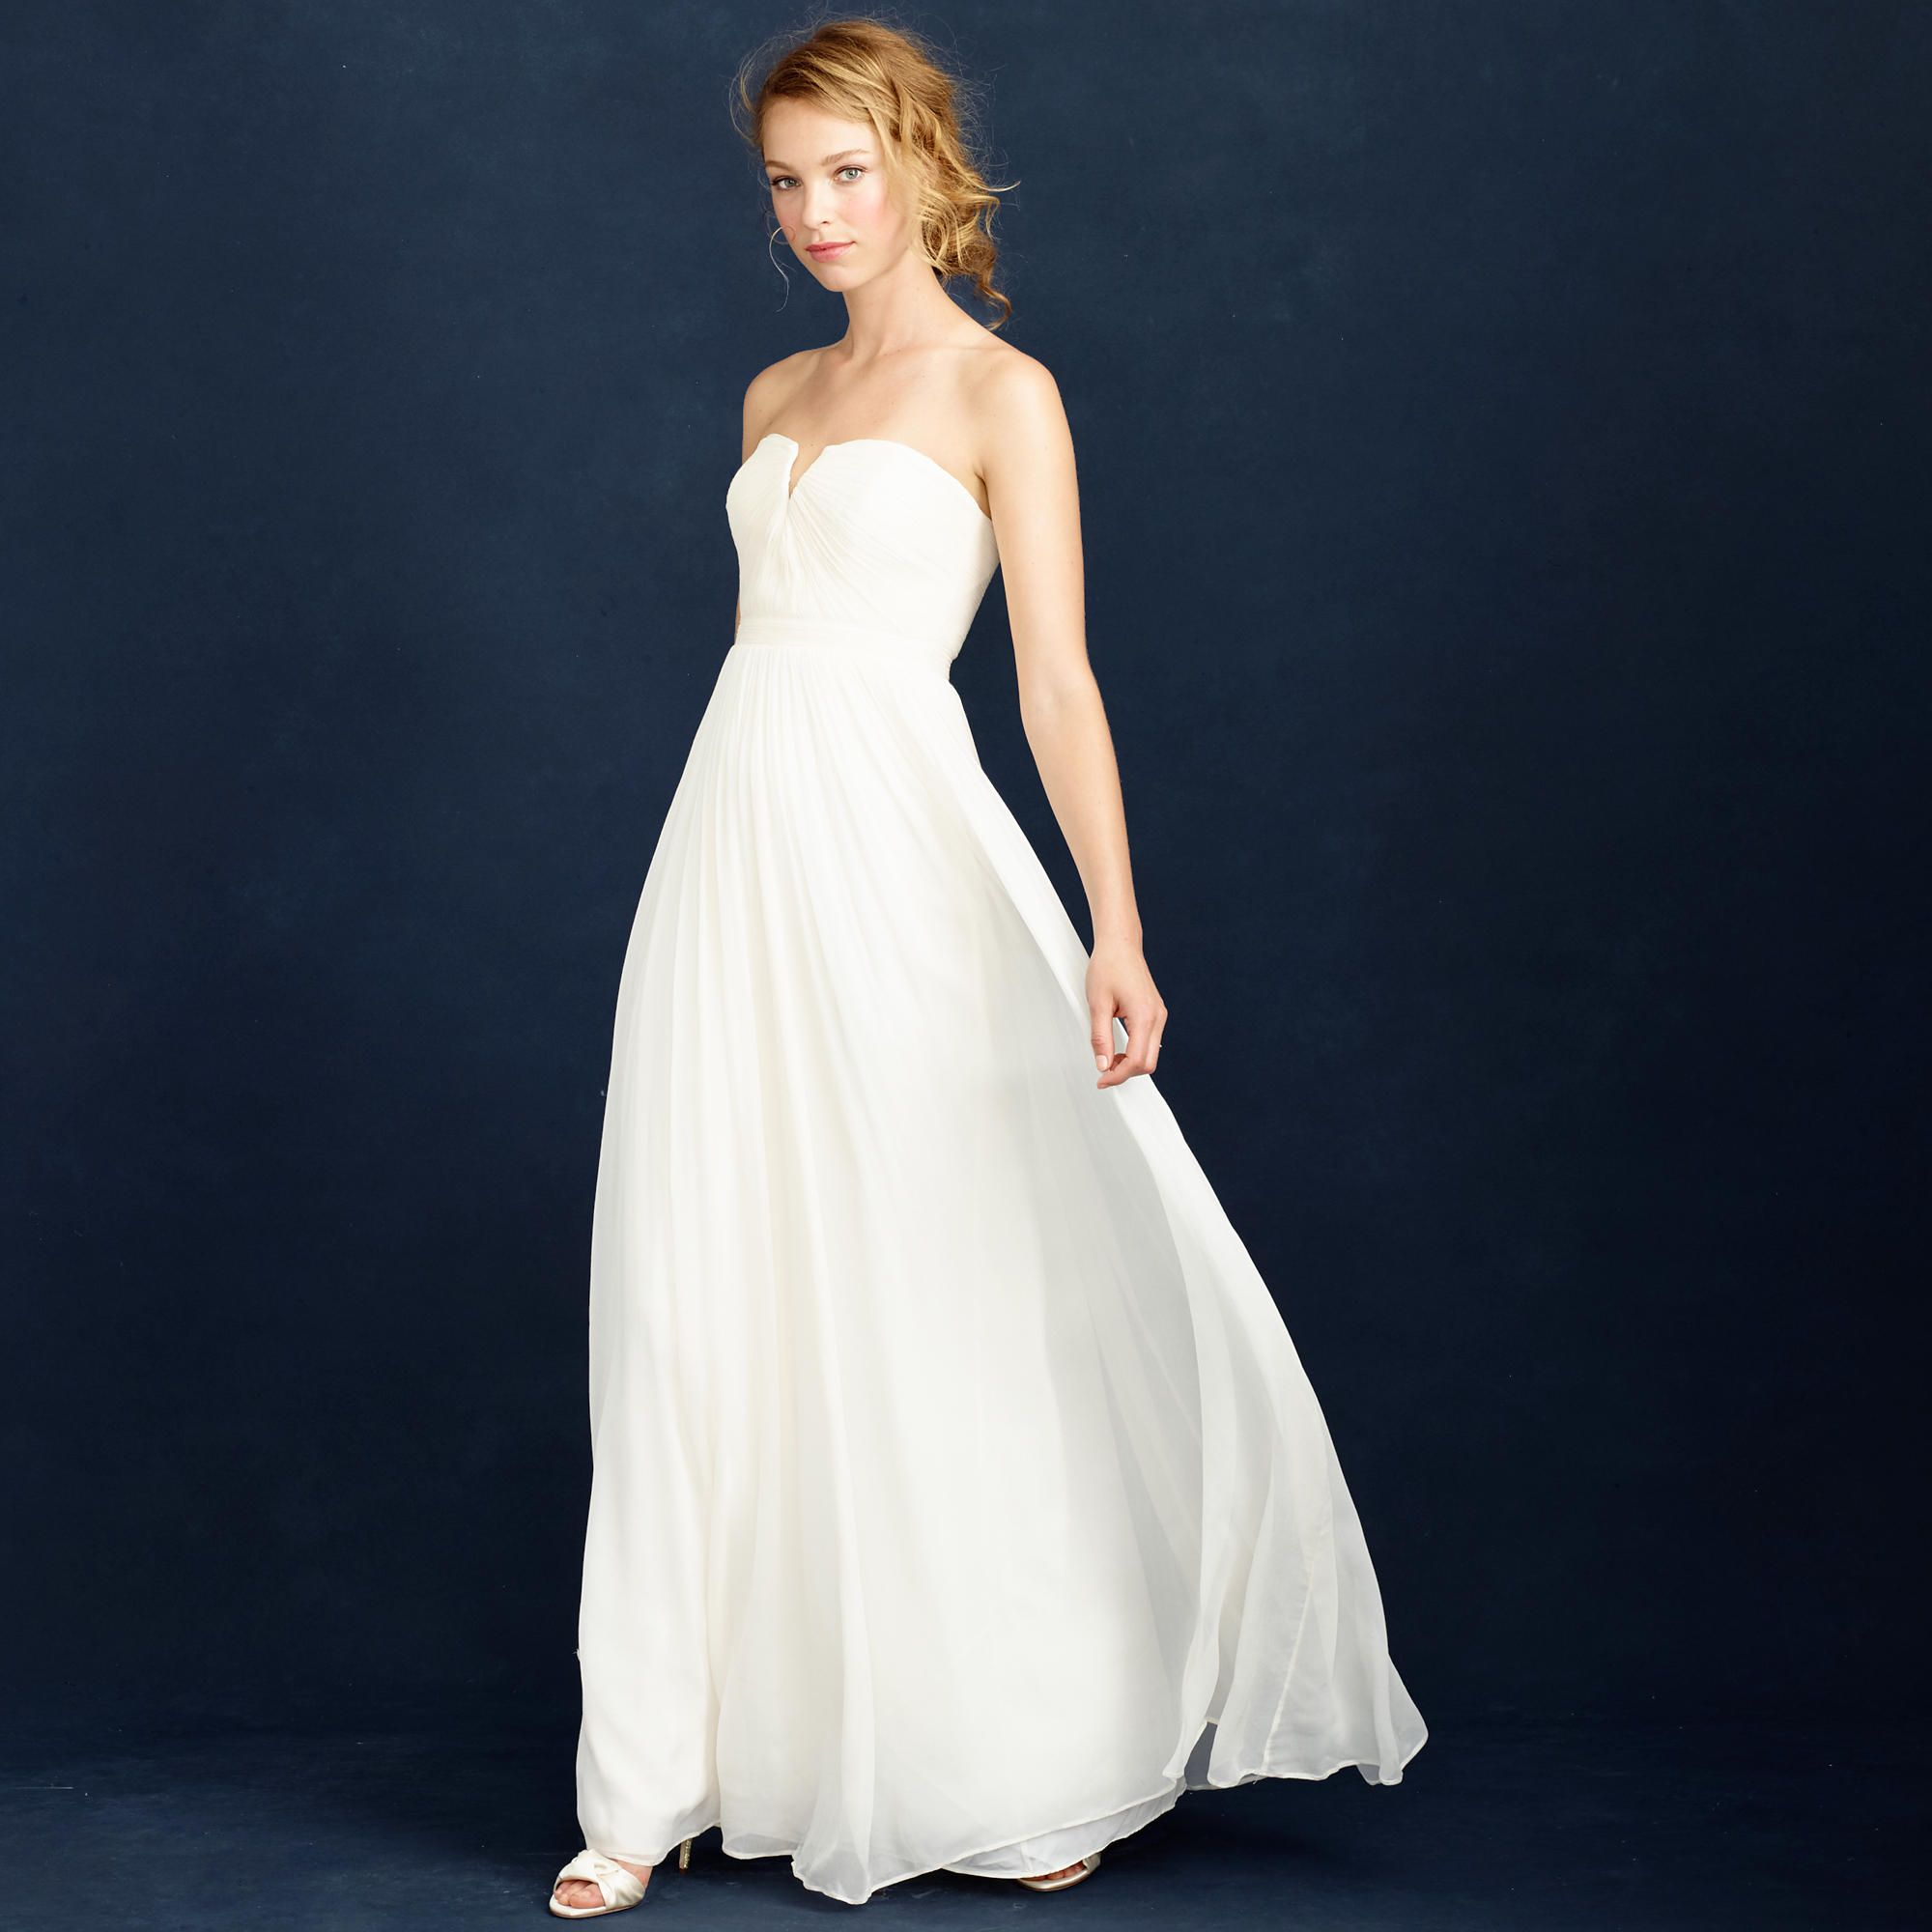 20 Wedding Dresses Inspired By Royal Brides | Gowns, Sell wedding ...